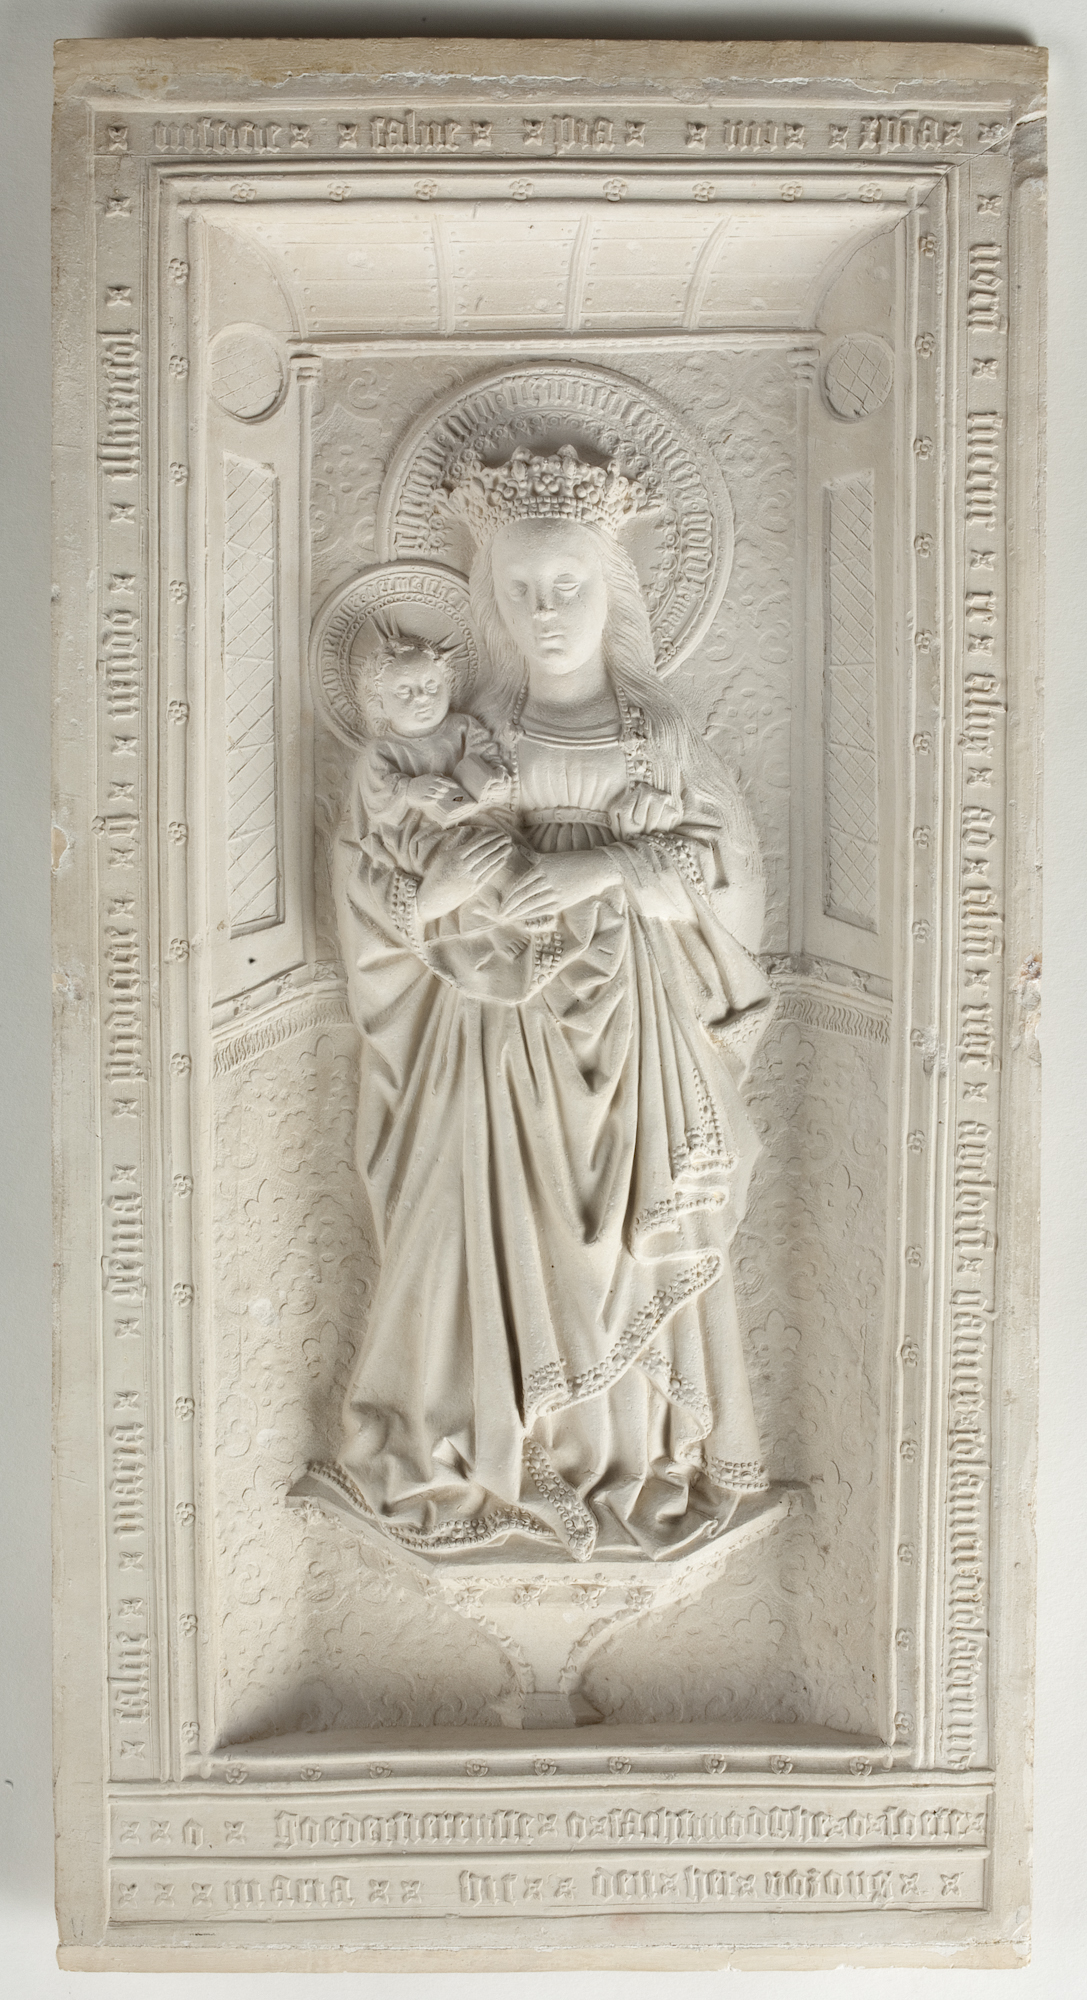 """Relief with the Virgin and Child (The Virgin of Zoeterwoude),"" 2nd half of 15th century, by Unknown artist from Utrecht. Pipe clay, 16 13/16 inches by 8 11/16 inches by 1 inch, Museum Catharijneconvent. (Courtesy of The Frick Collection)"